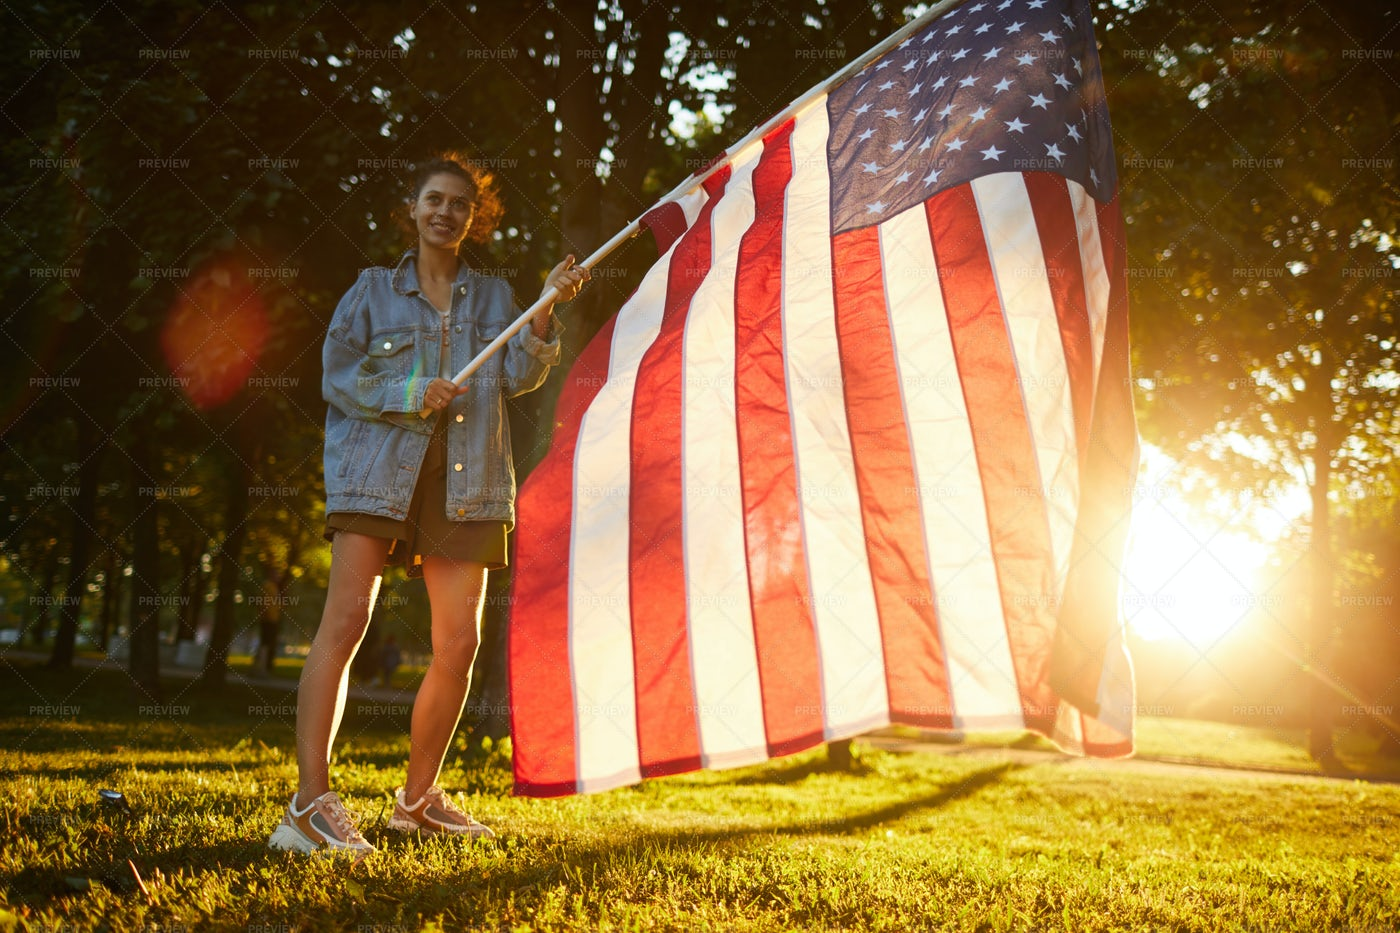 Girl Waving National Flag In Forest: Stock Photos